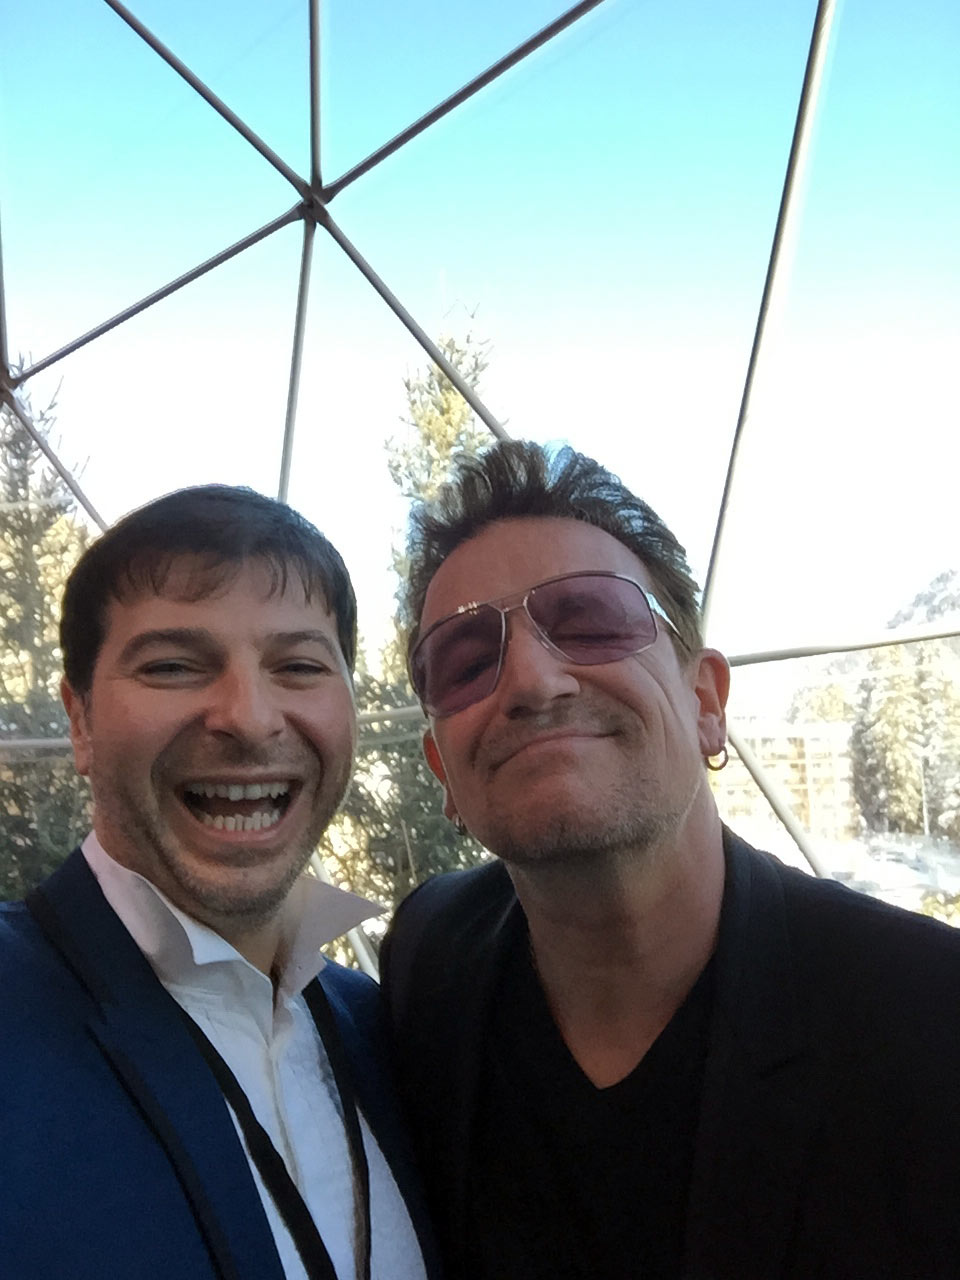 Plamen Russev with the philantrophist and frontman of the legendary U2, Bono